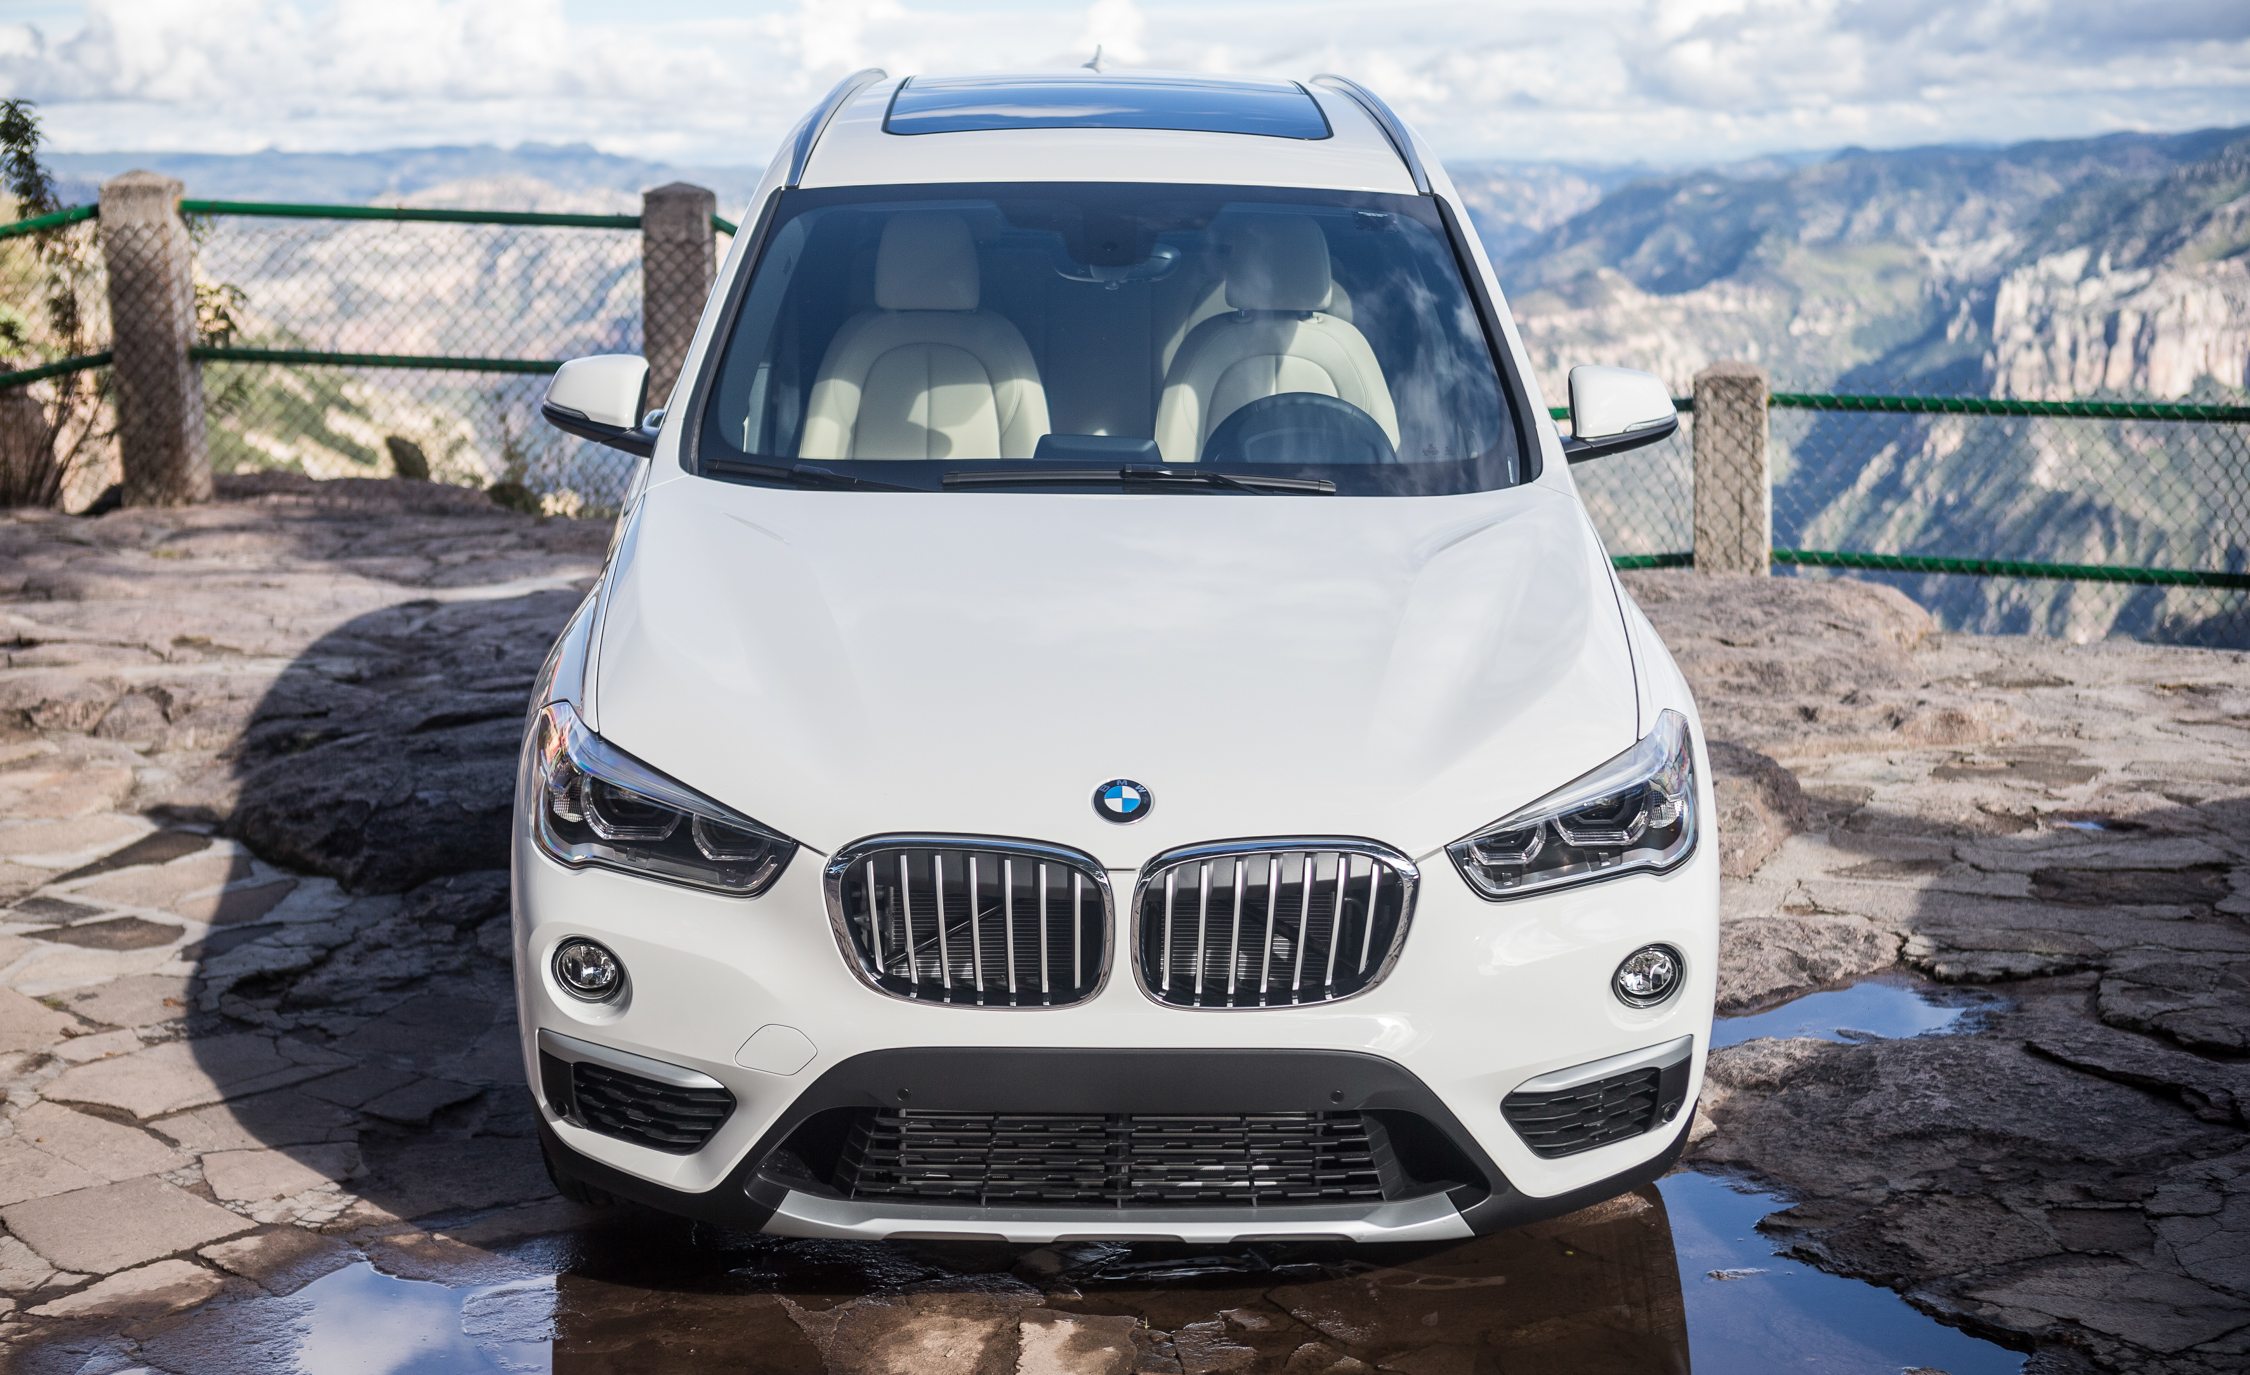 2016 BMW X1 Exterior White Metallic Front End (Photo 4 of 36)